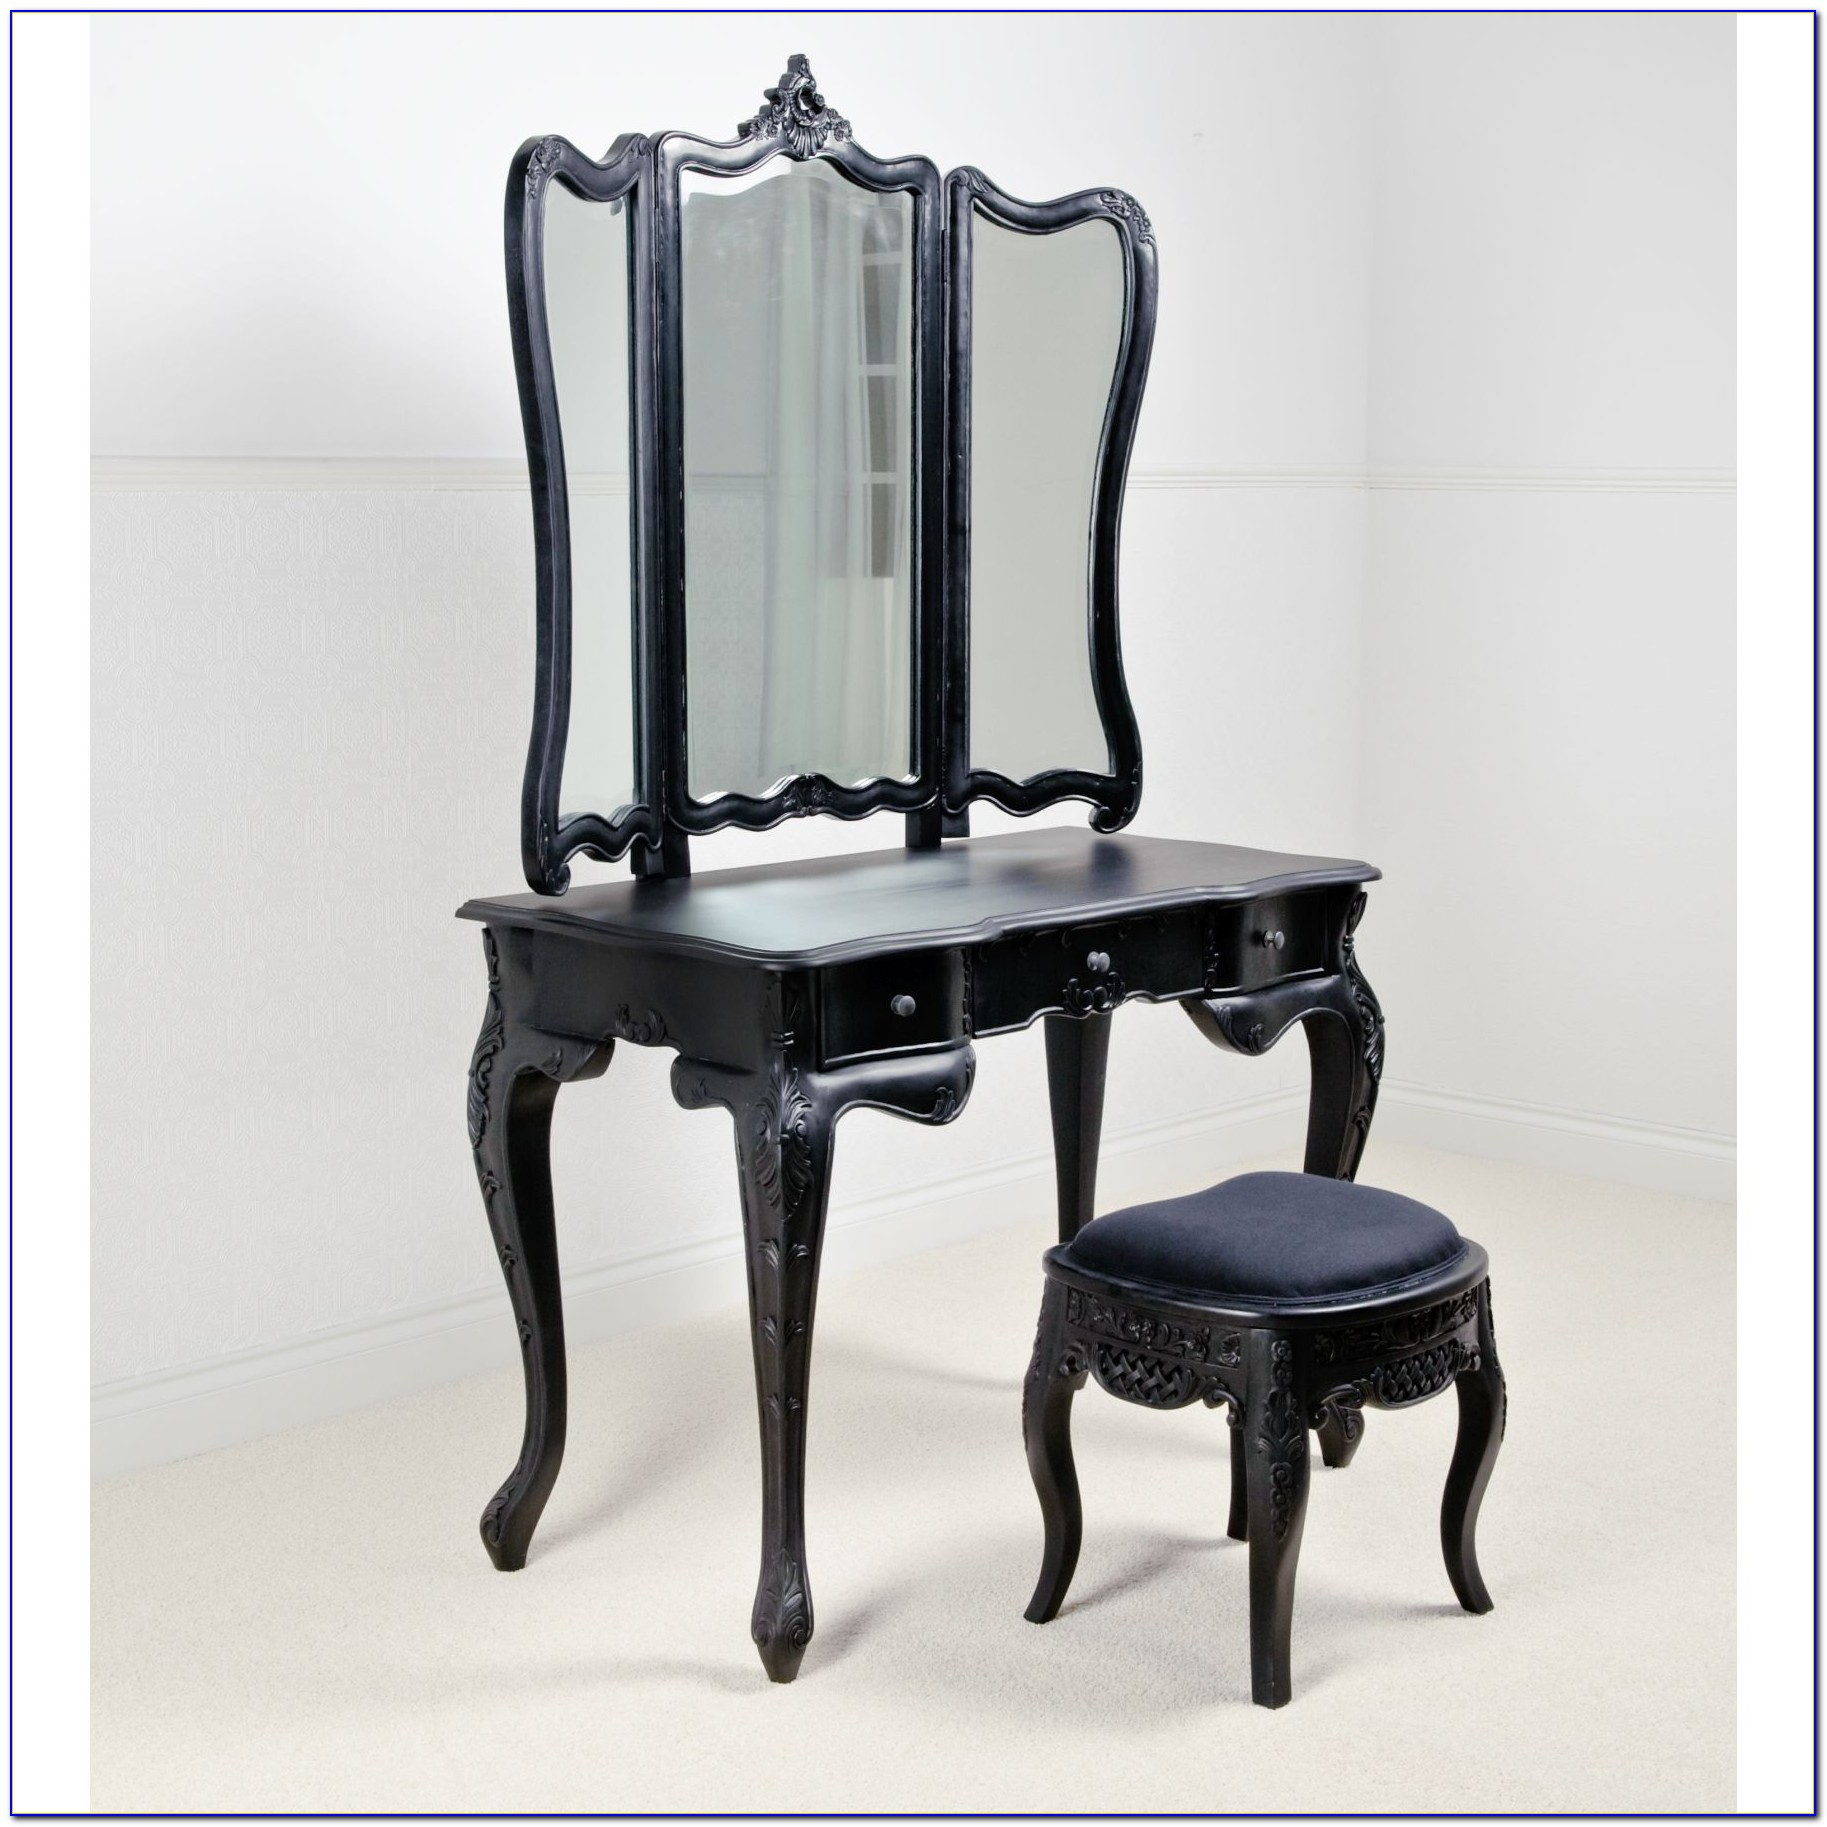 Black Antique Wood Makeup Vanity Table With Mirror And Bench